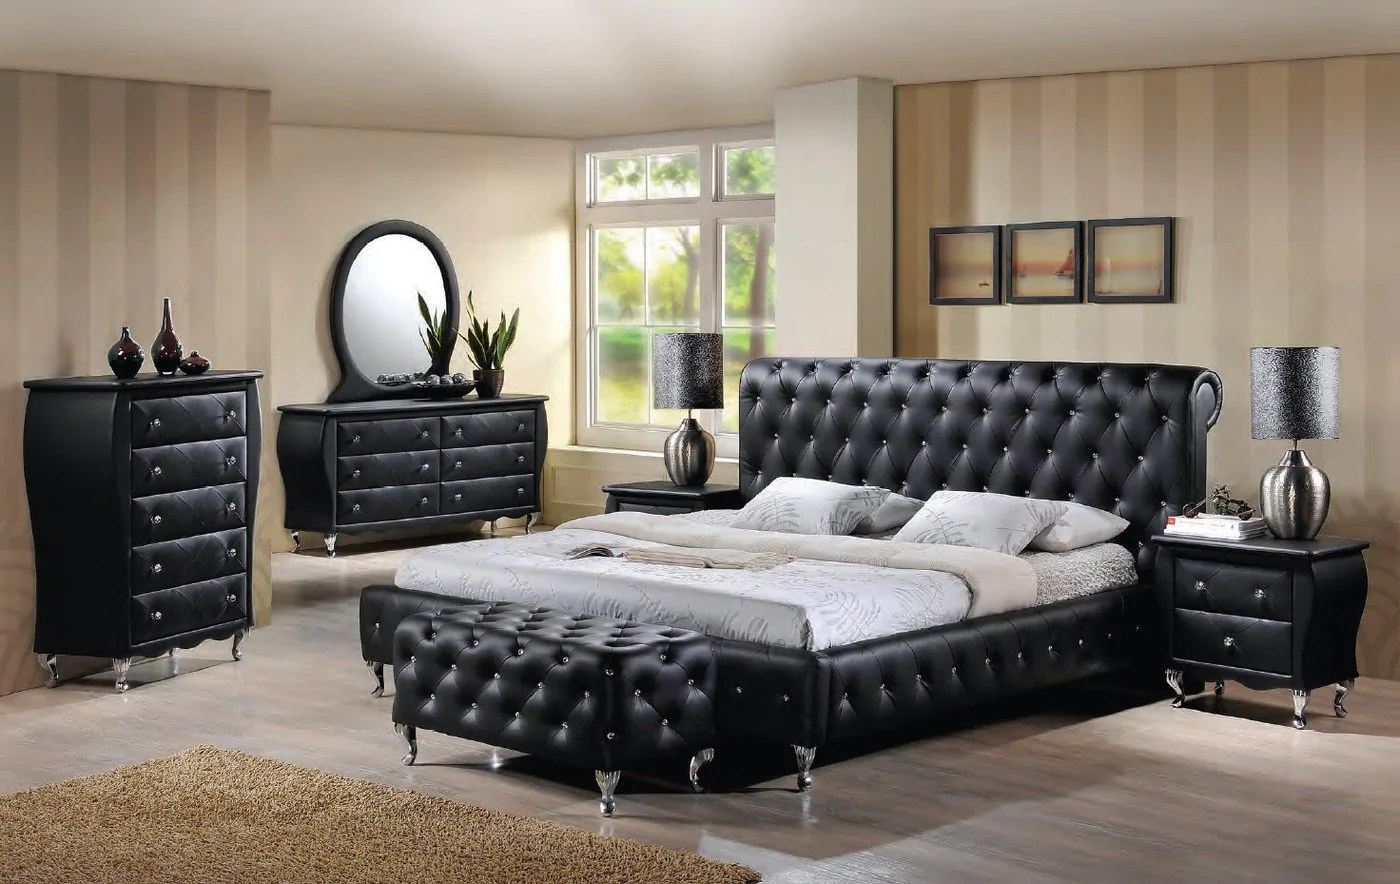 romeo black king bed dresser mirror